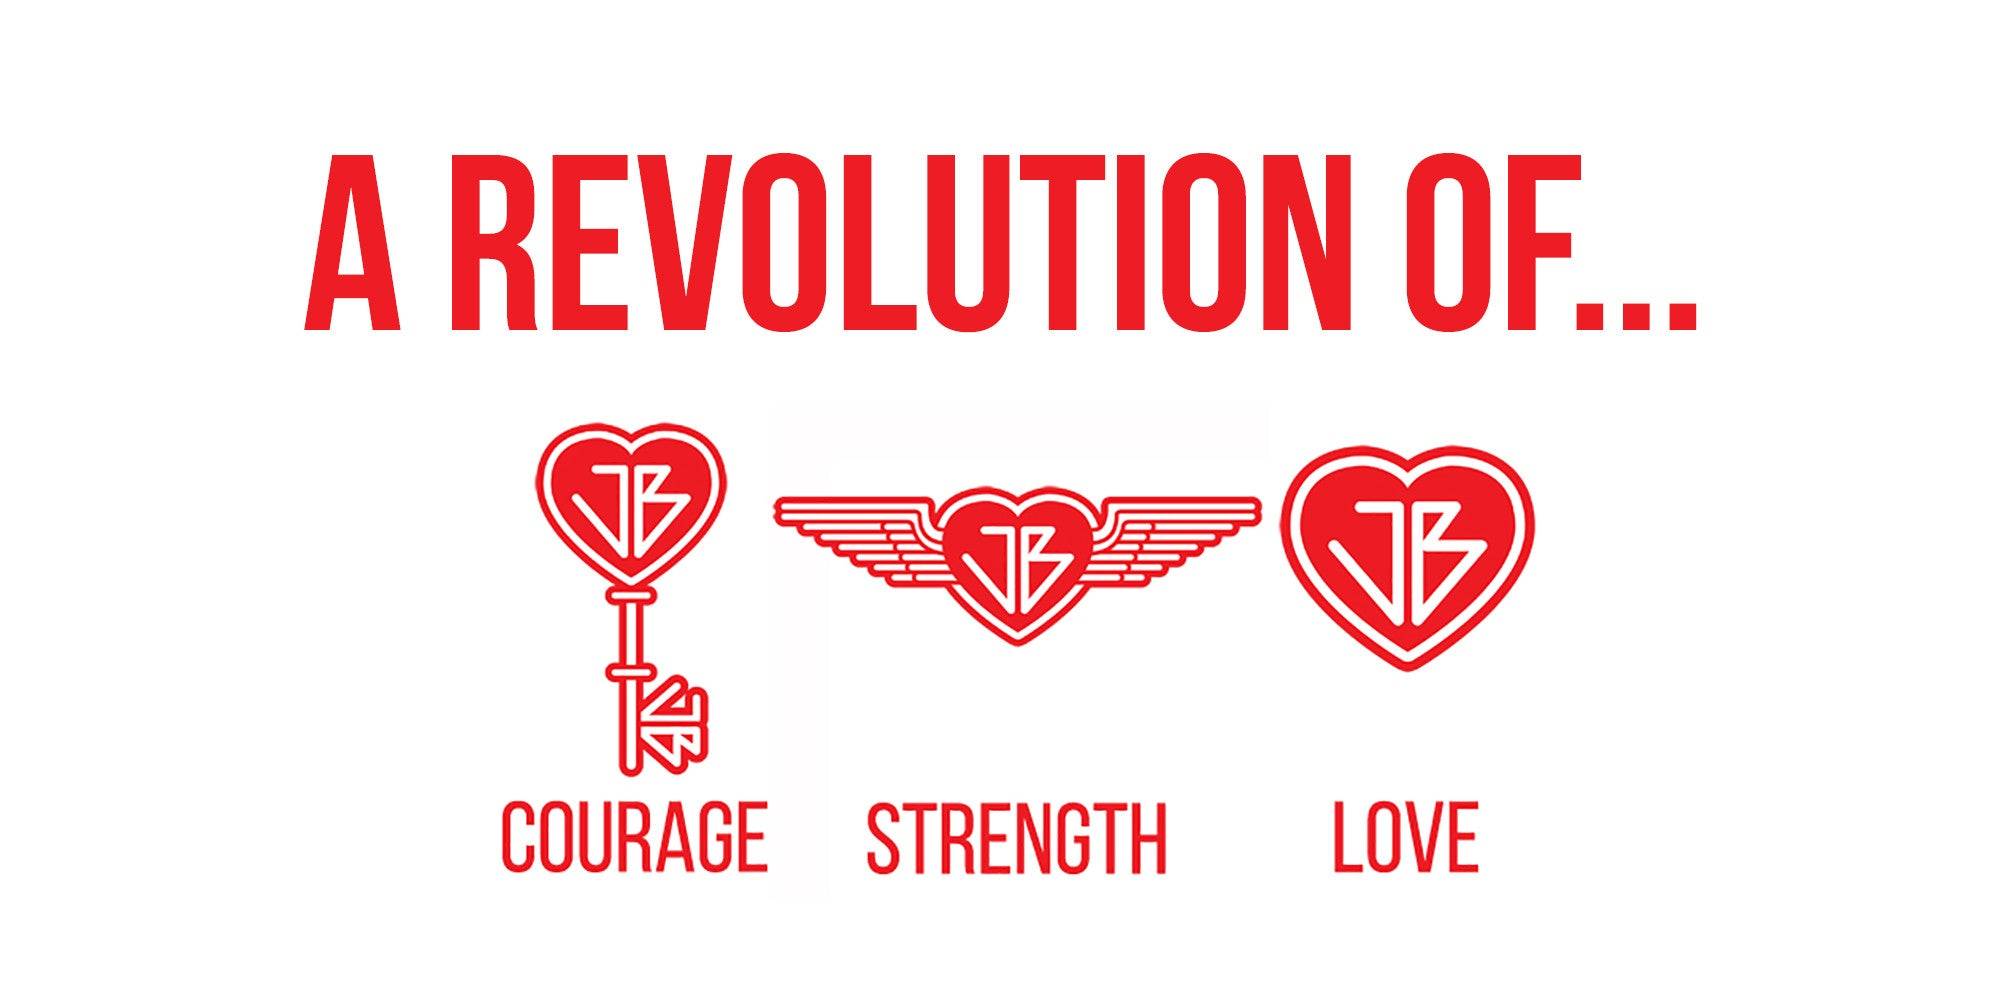 The Just Be Revolution Logo Key Courage Wings Strength Heart Love